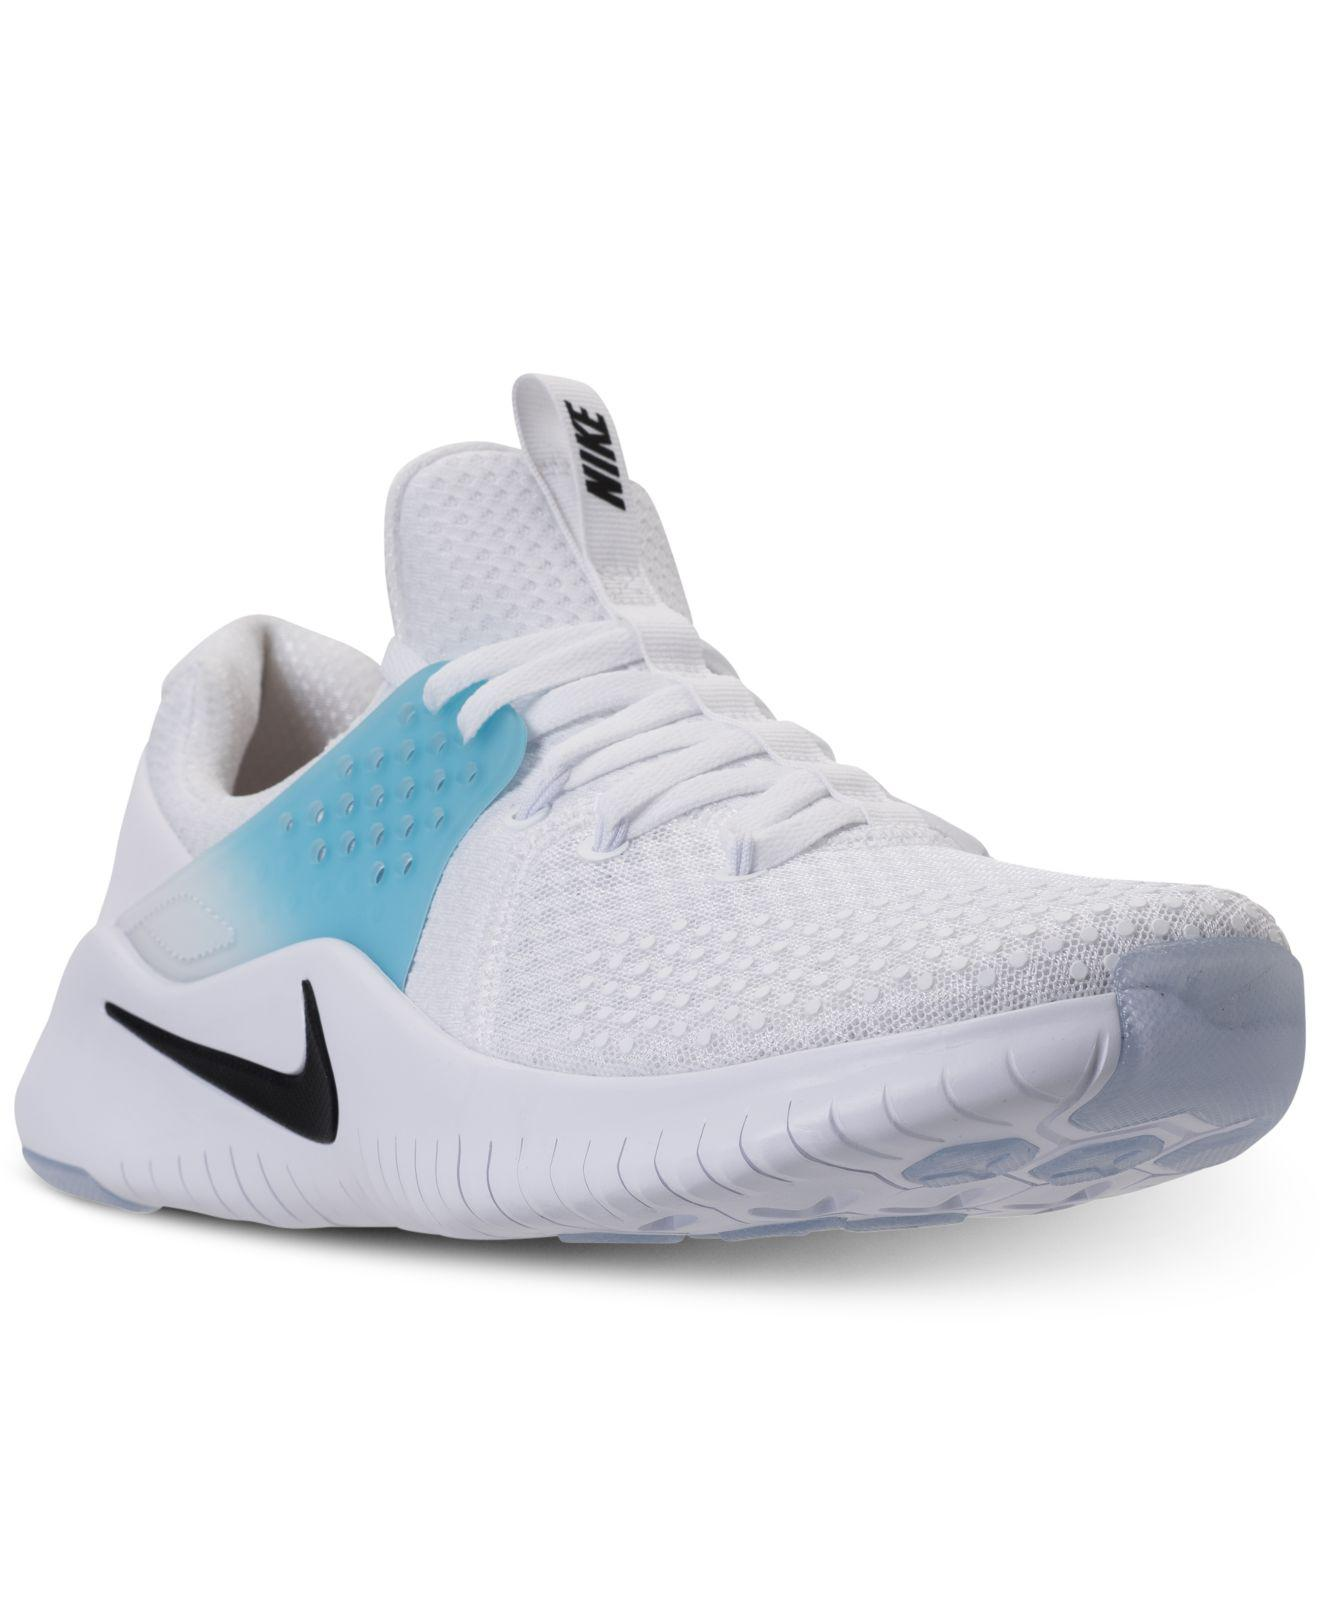 b489679be72d Lyst - Nike Free Trainer V8 Training Sneakers From Finish Line in ...